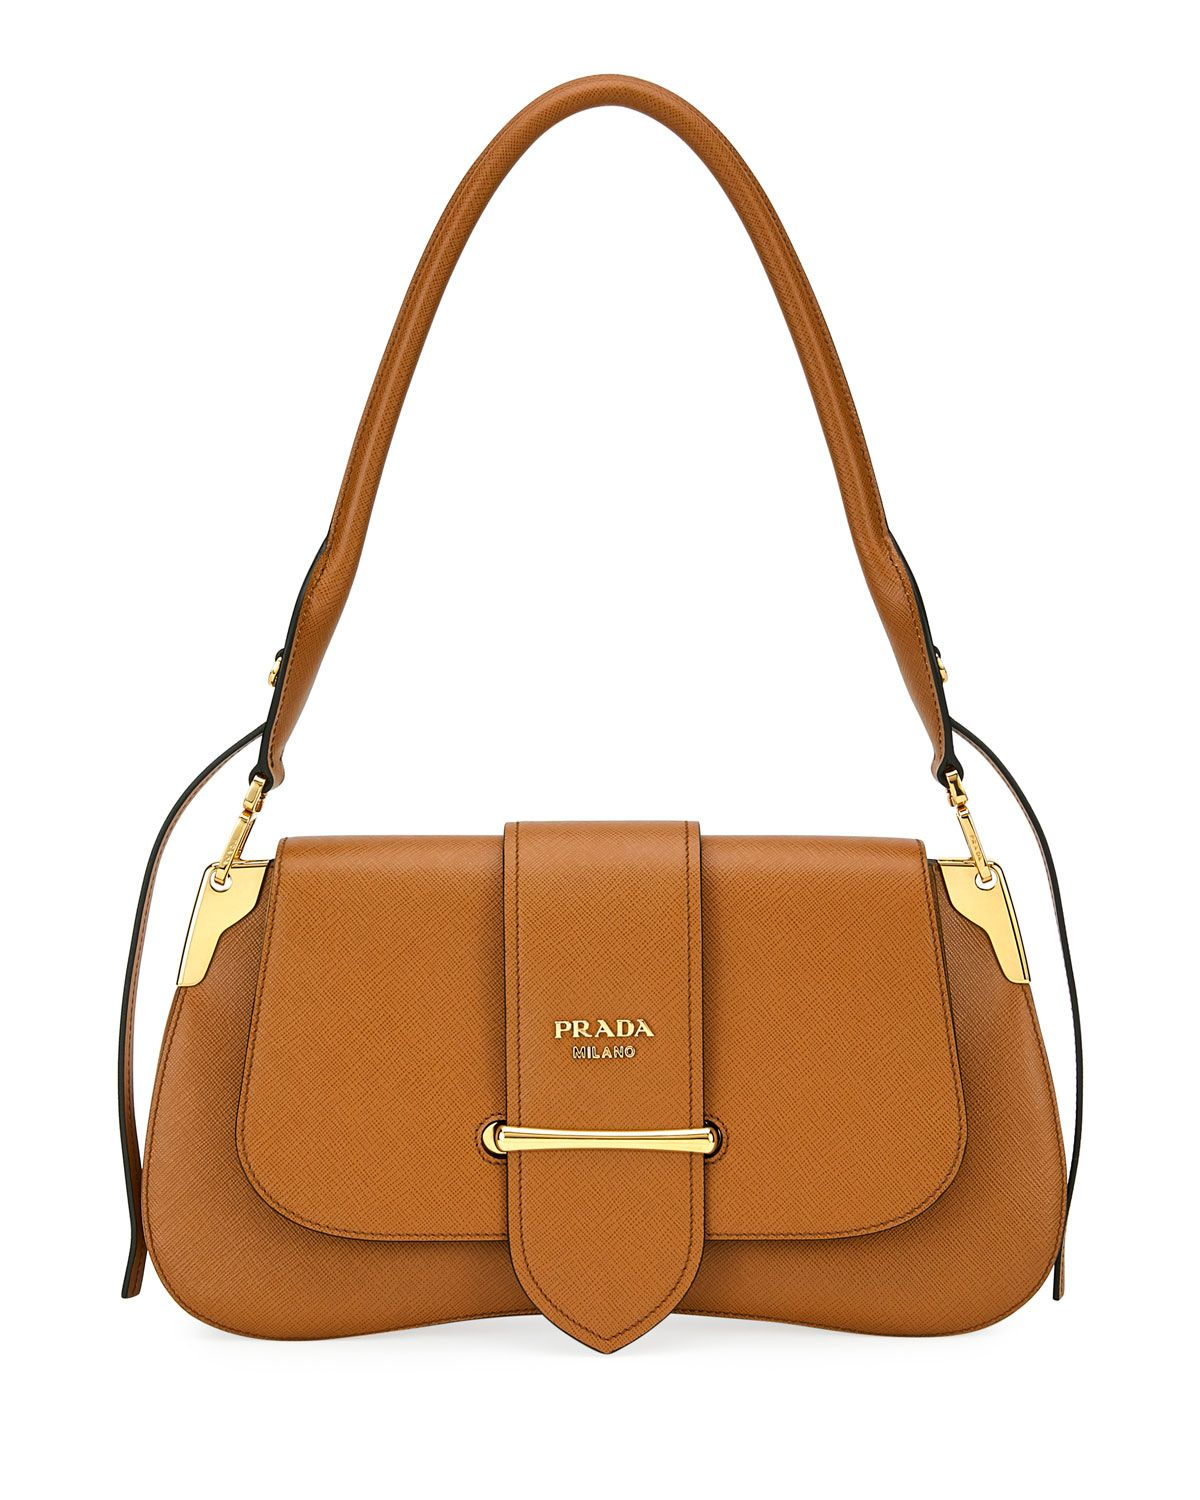 prada-sidonie-saffiano-large-brown-leather-shoulder-bag